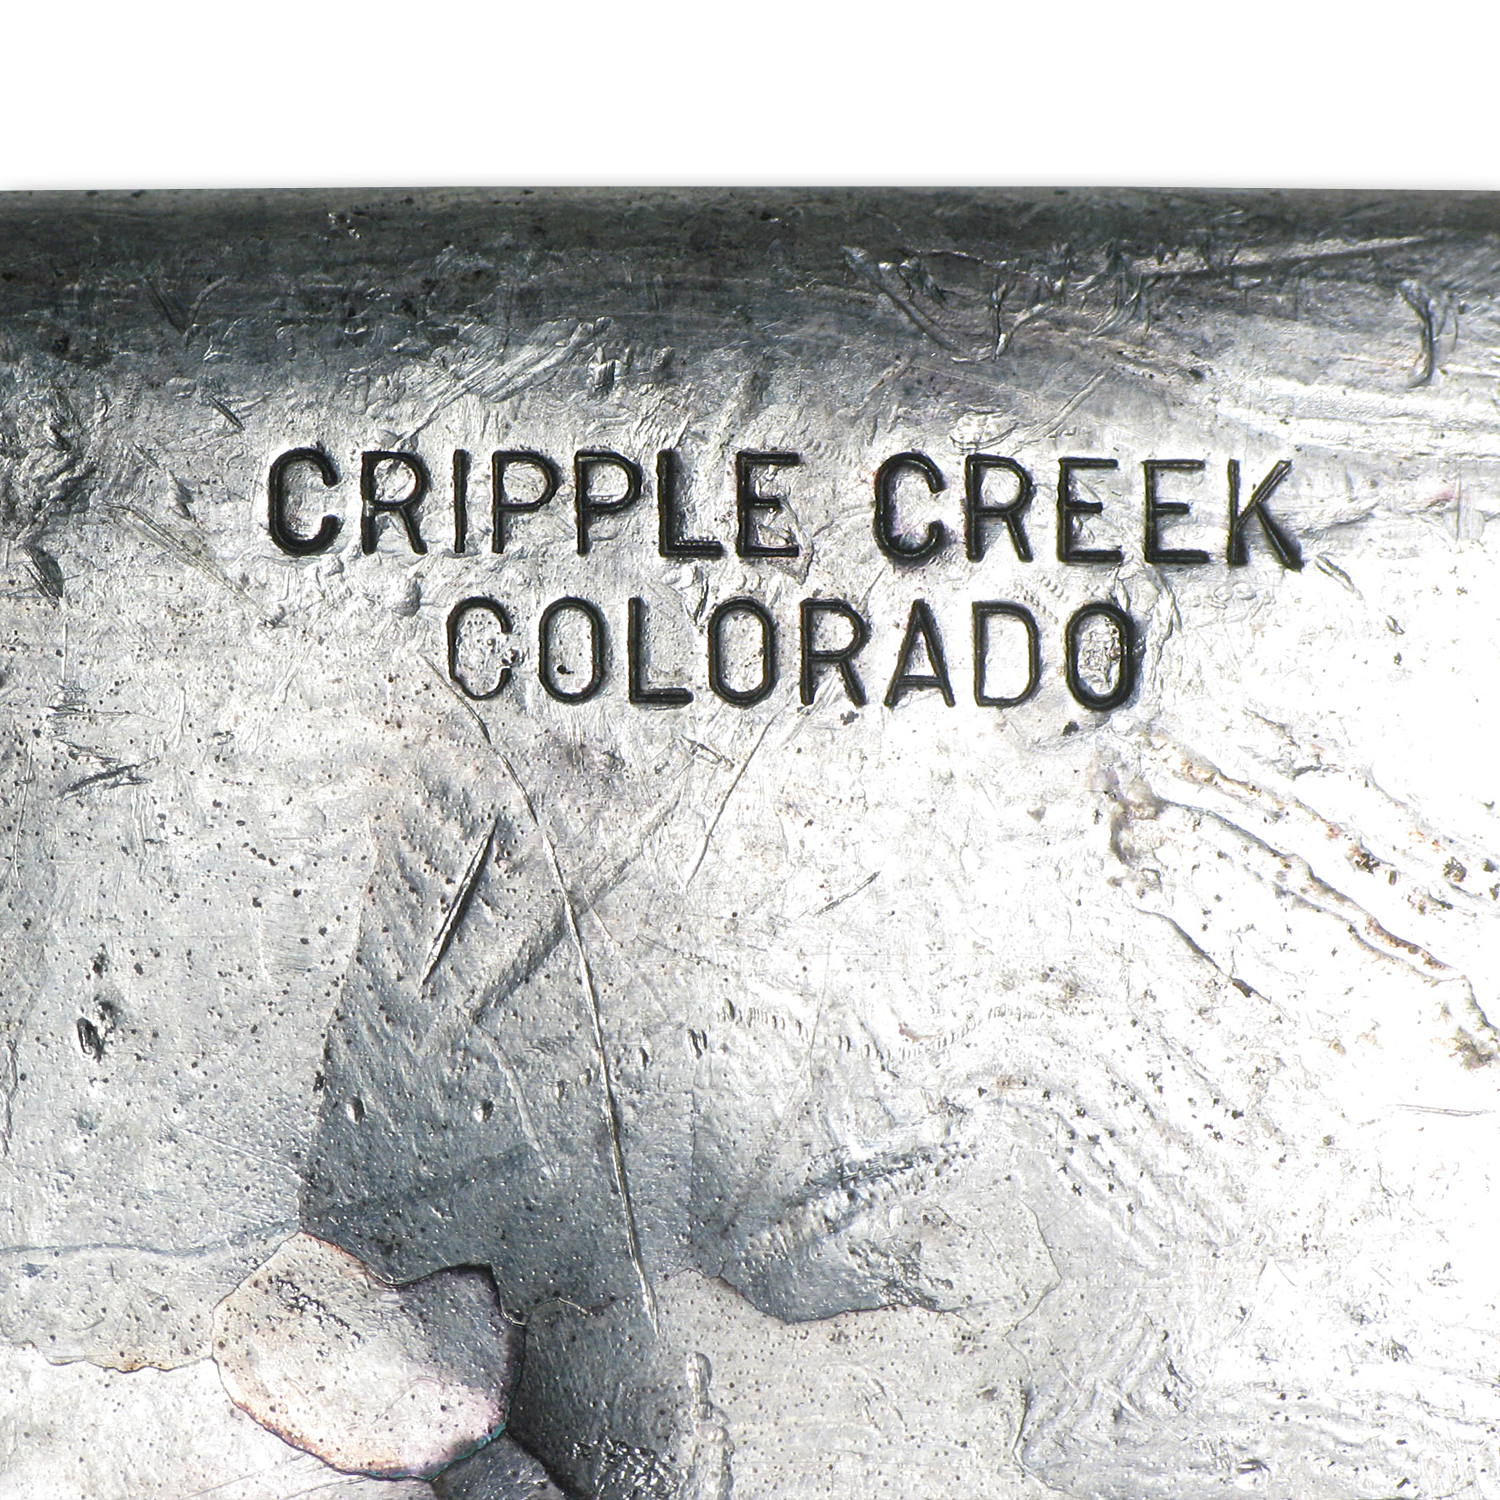 10 oz Silver Bars - Cripple Creek Colorado